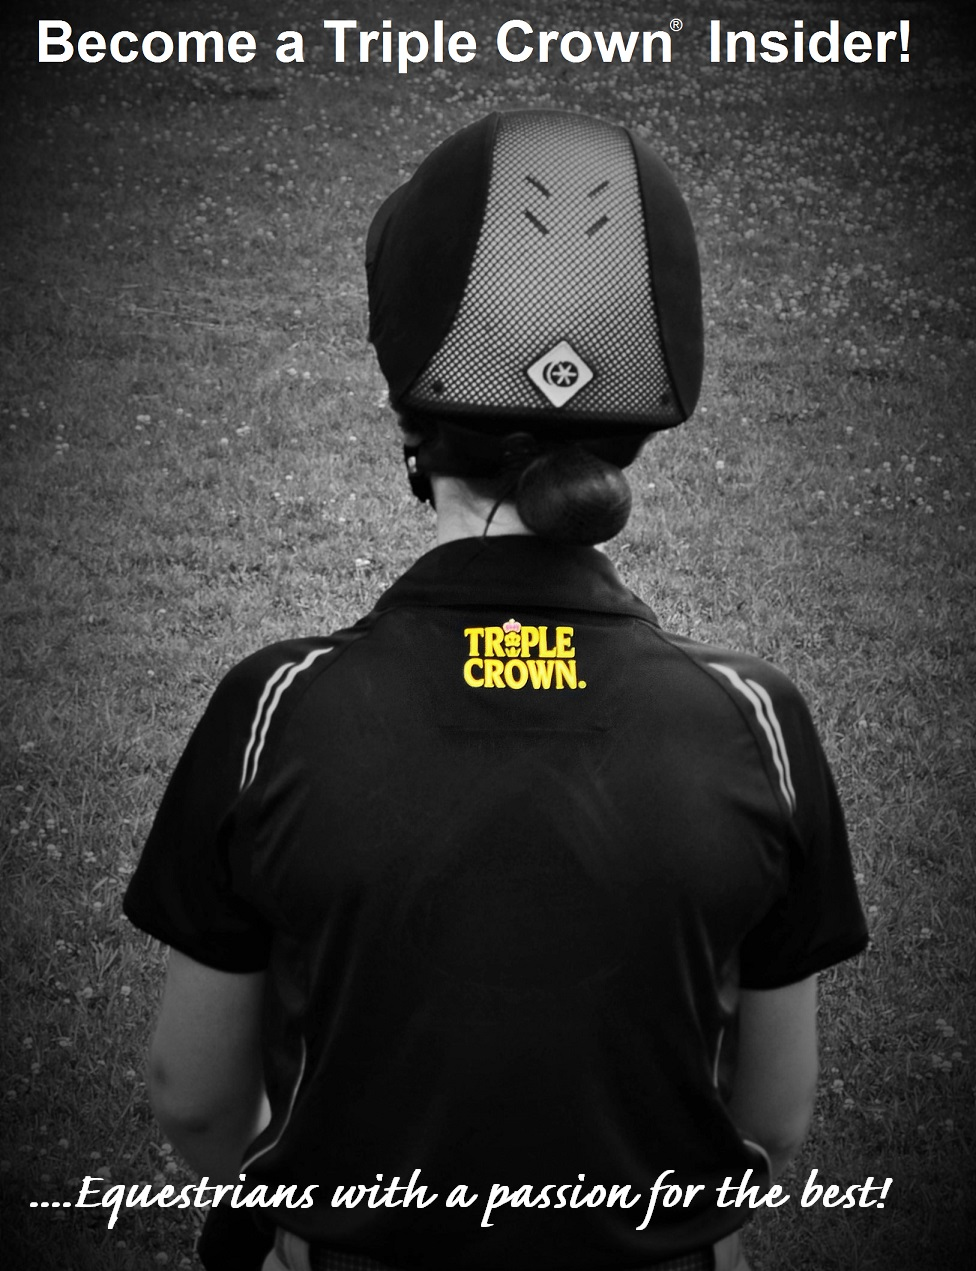 Woman from behind wearing Triple Crown logo shirt